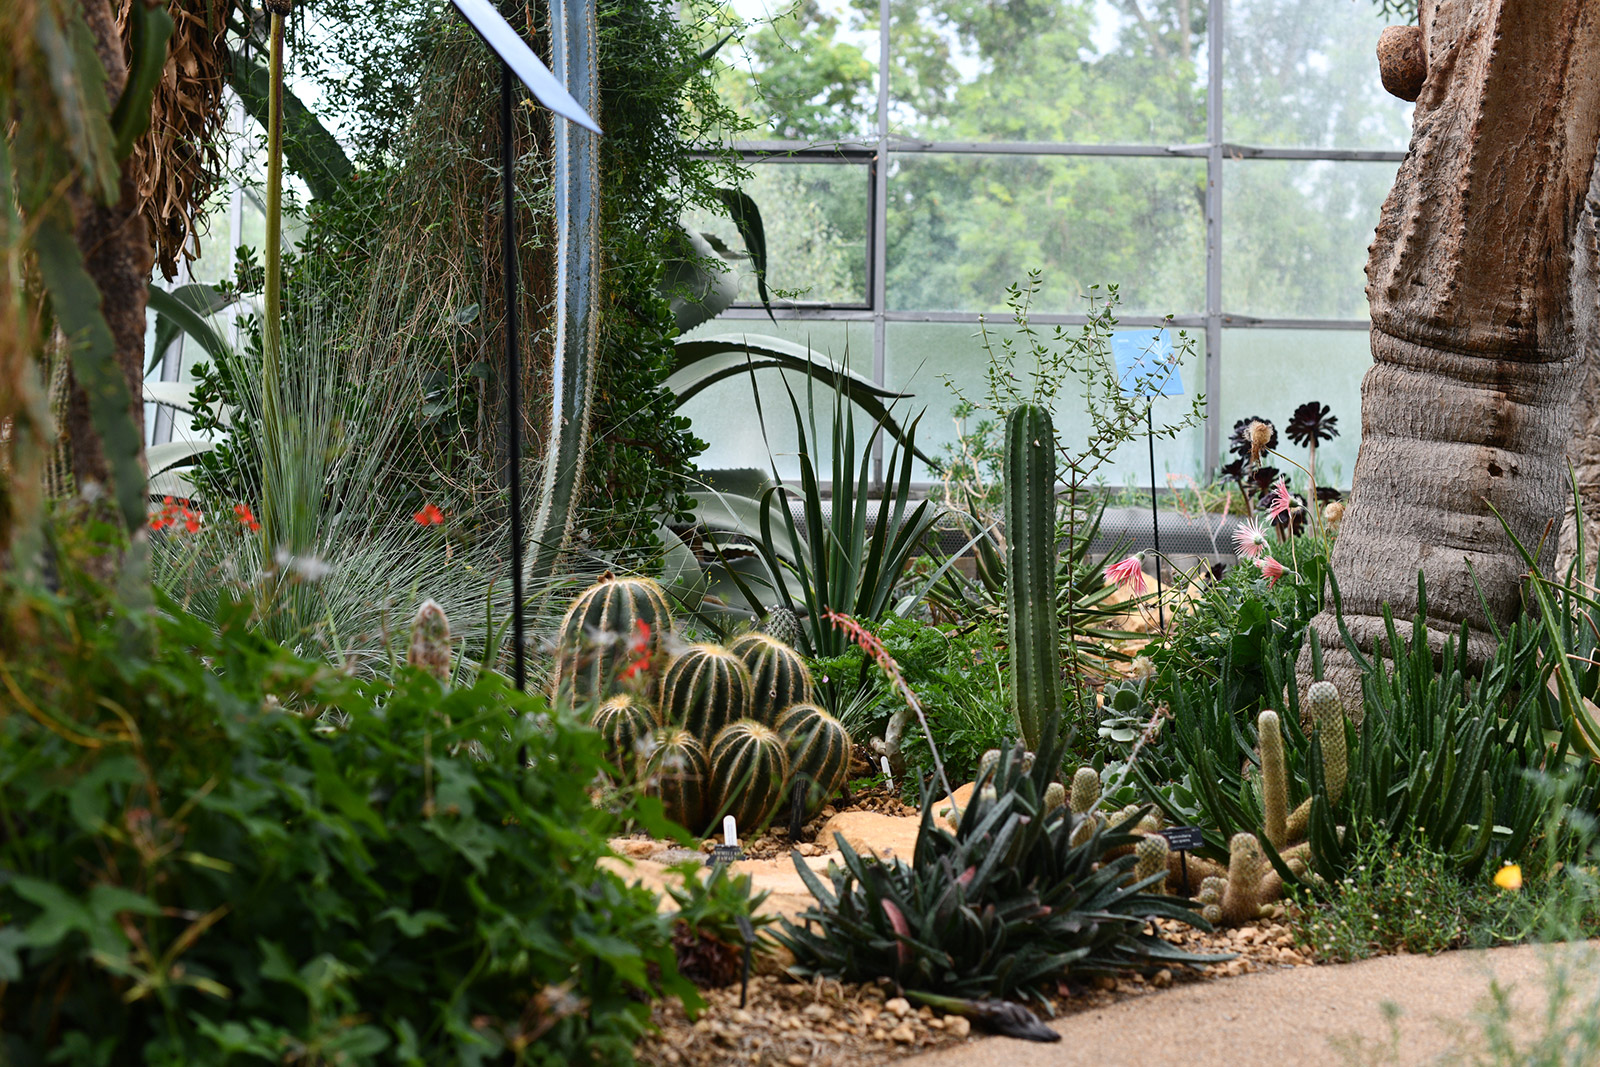 Cacti and succulents planted inside the 'desert' glasshouses at Oxford Botanic Garden and Arboretum